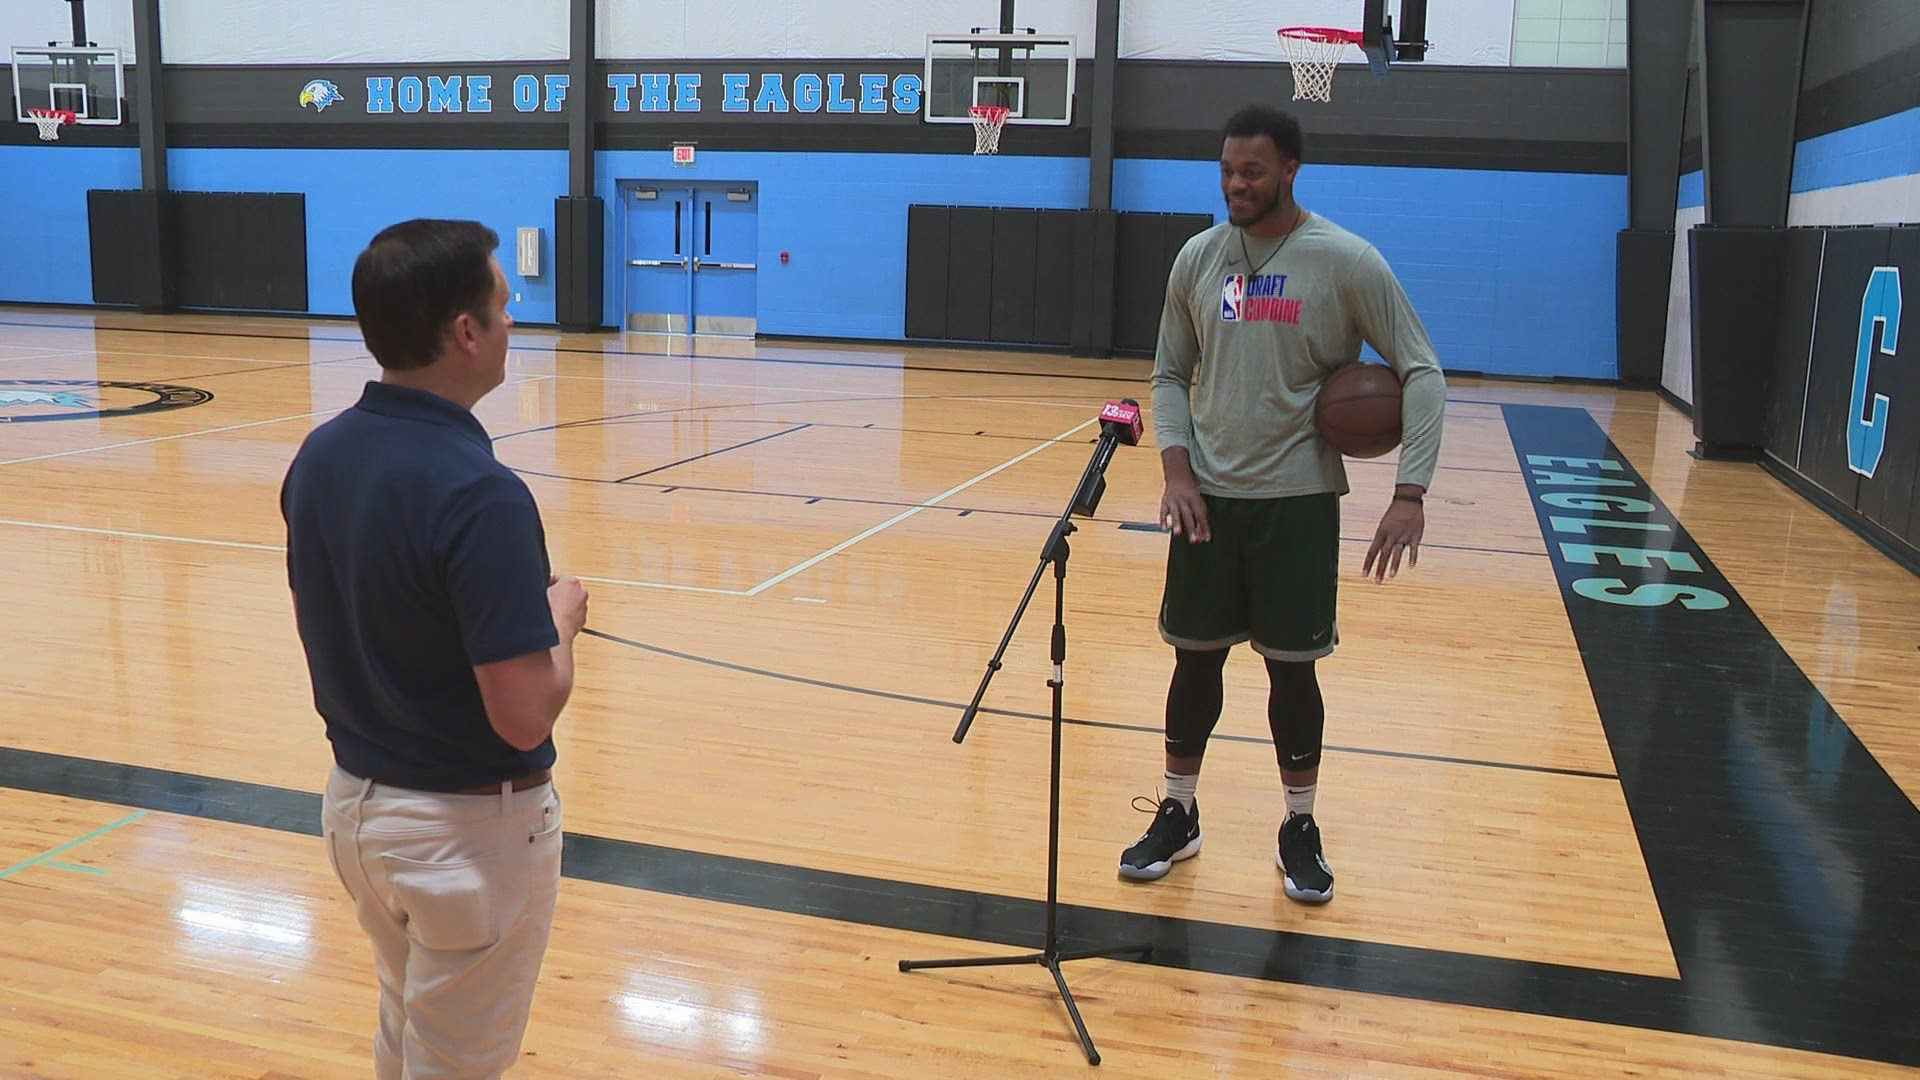 Ready For The Nba How Former Msu Star Xavier Tillman Took His Play To The Next Level With Just A Trainer A Ball And A Basketball Court Wgrz Com